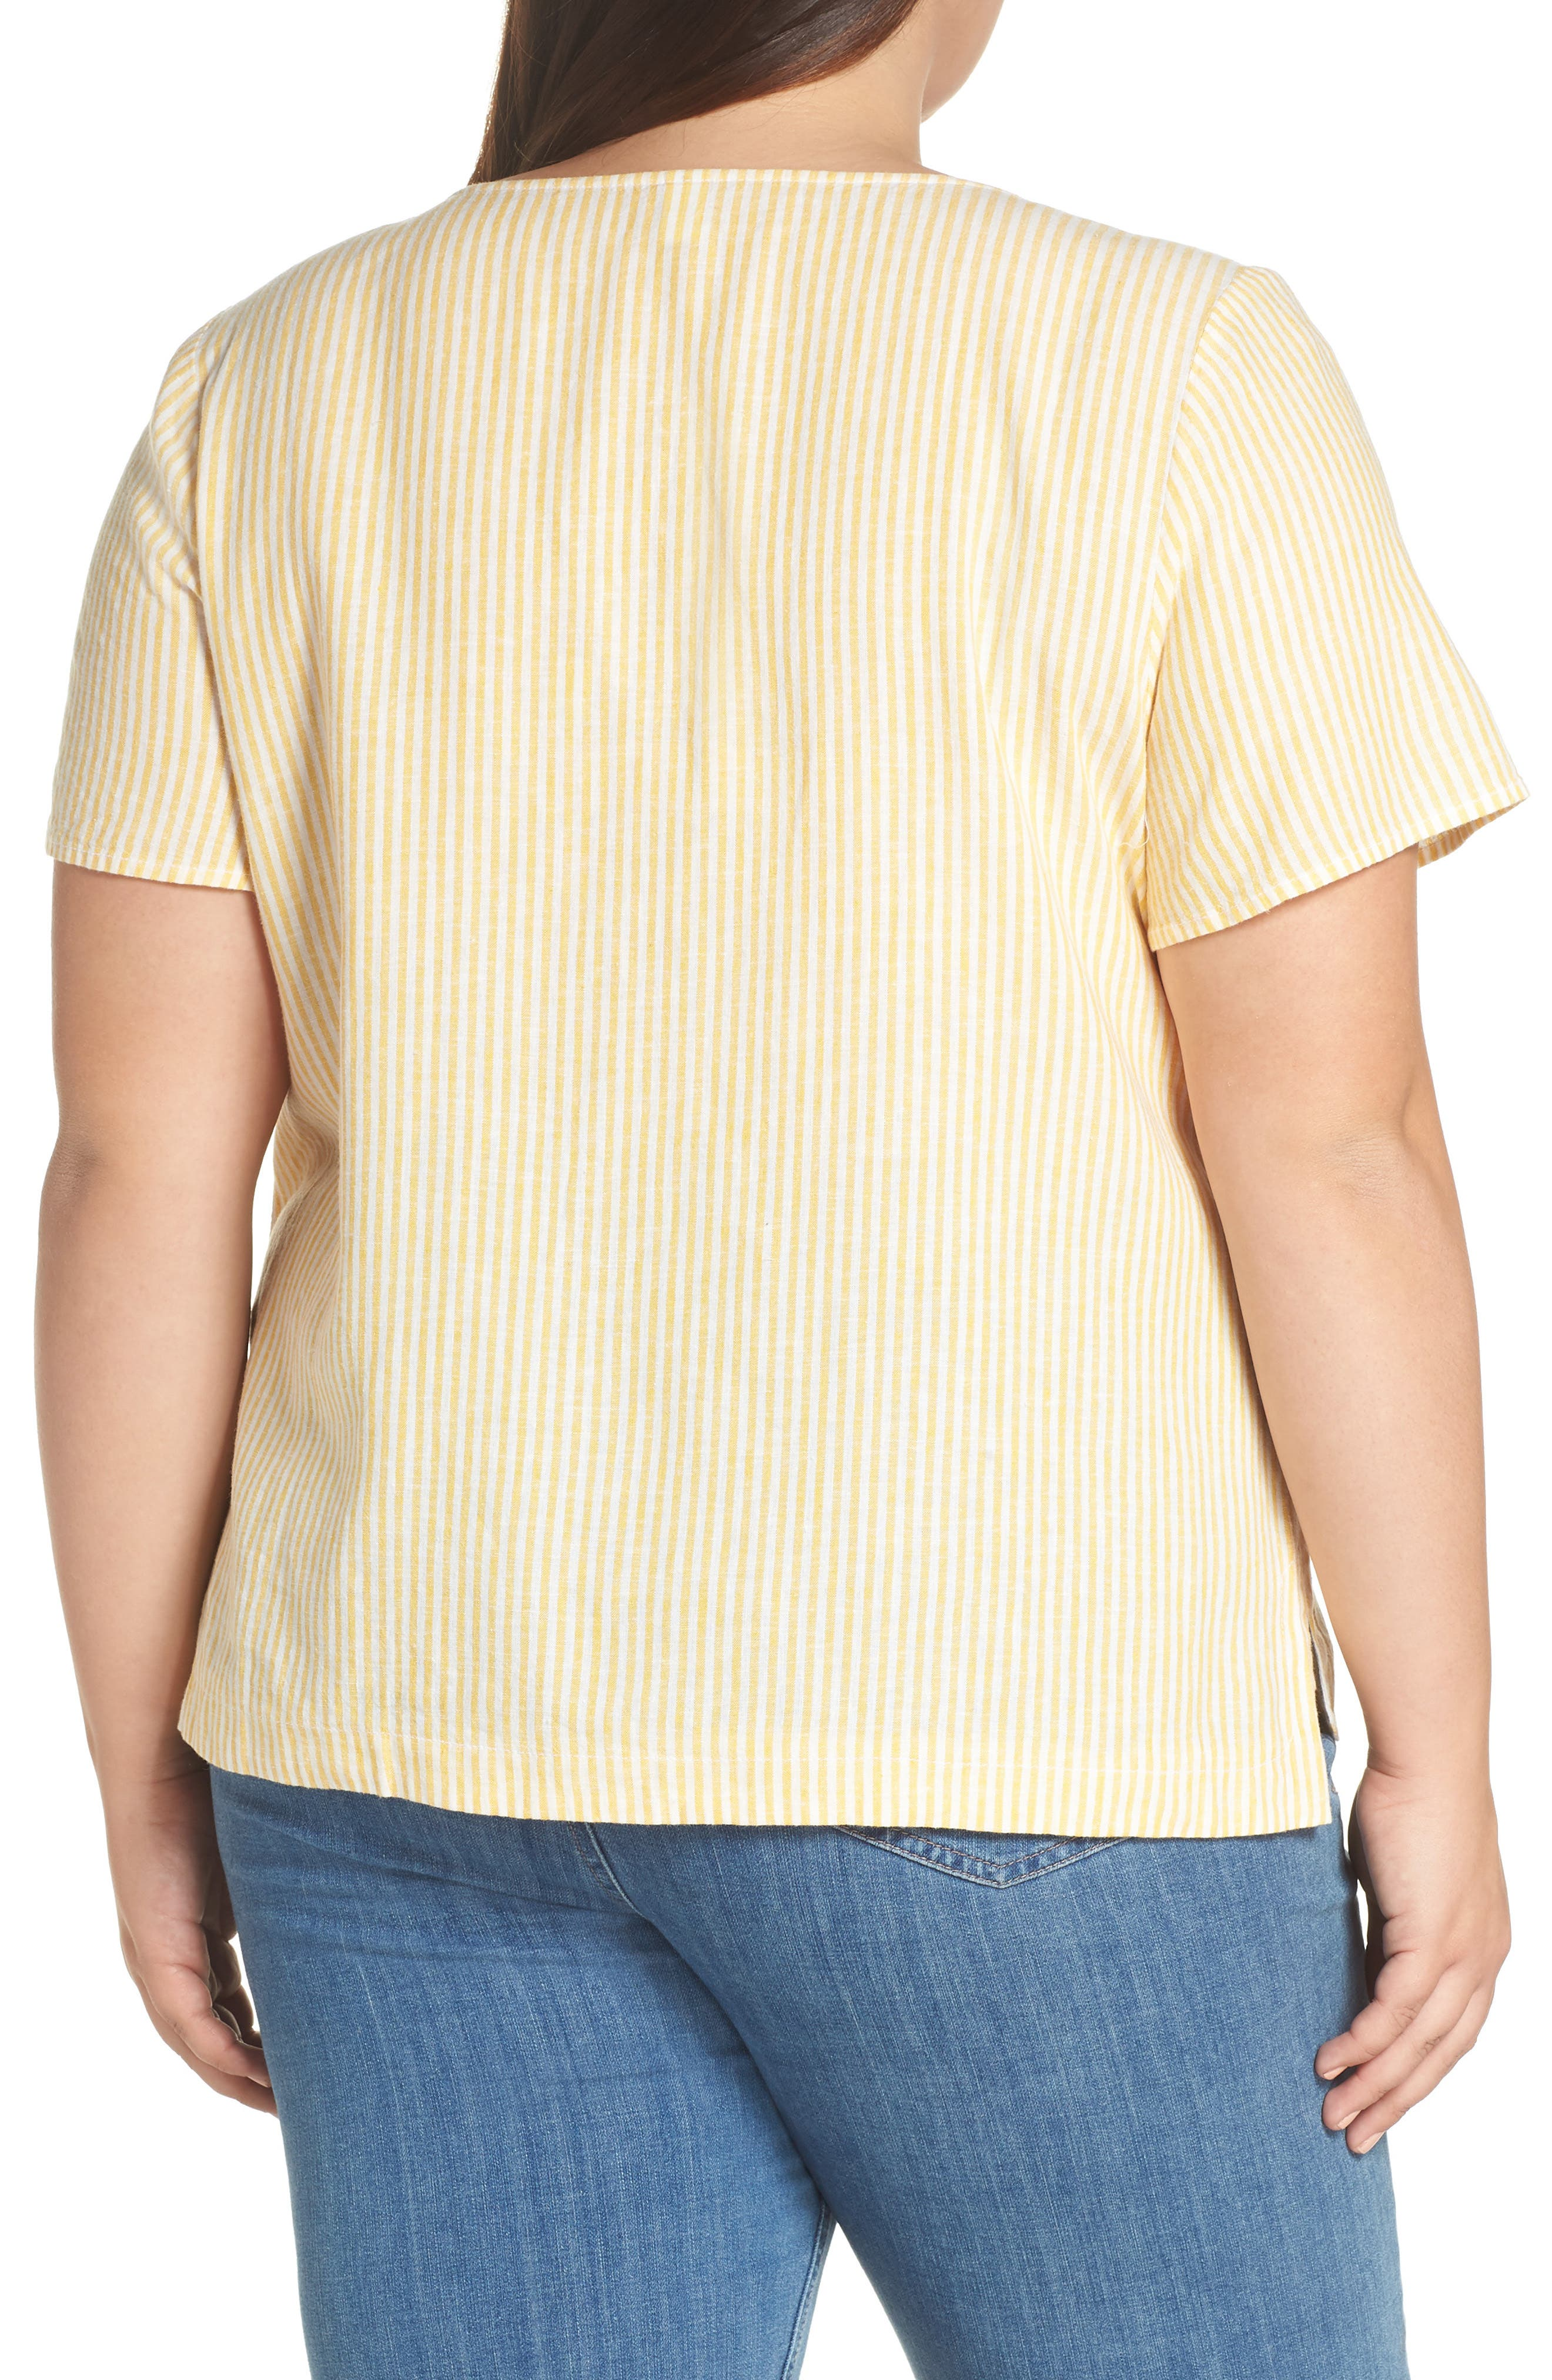 BP., Button Front Linen Blend Top, Alternate thumbnail 8, color, YELLOW WHIP MARA STRIPE